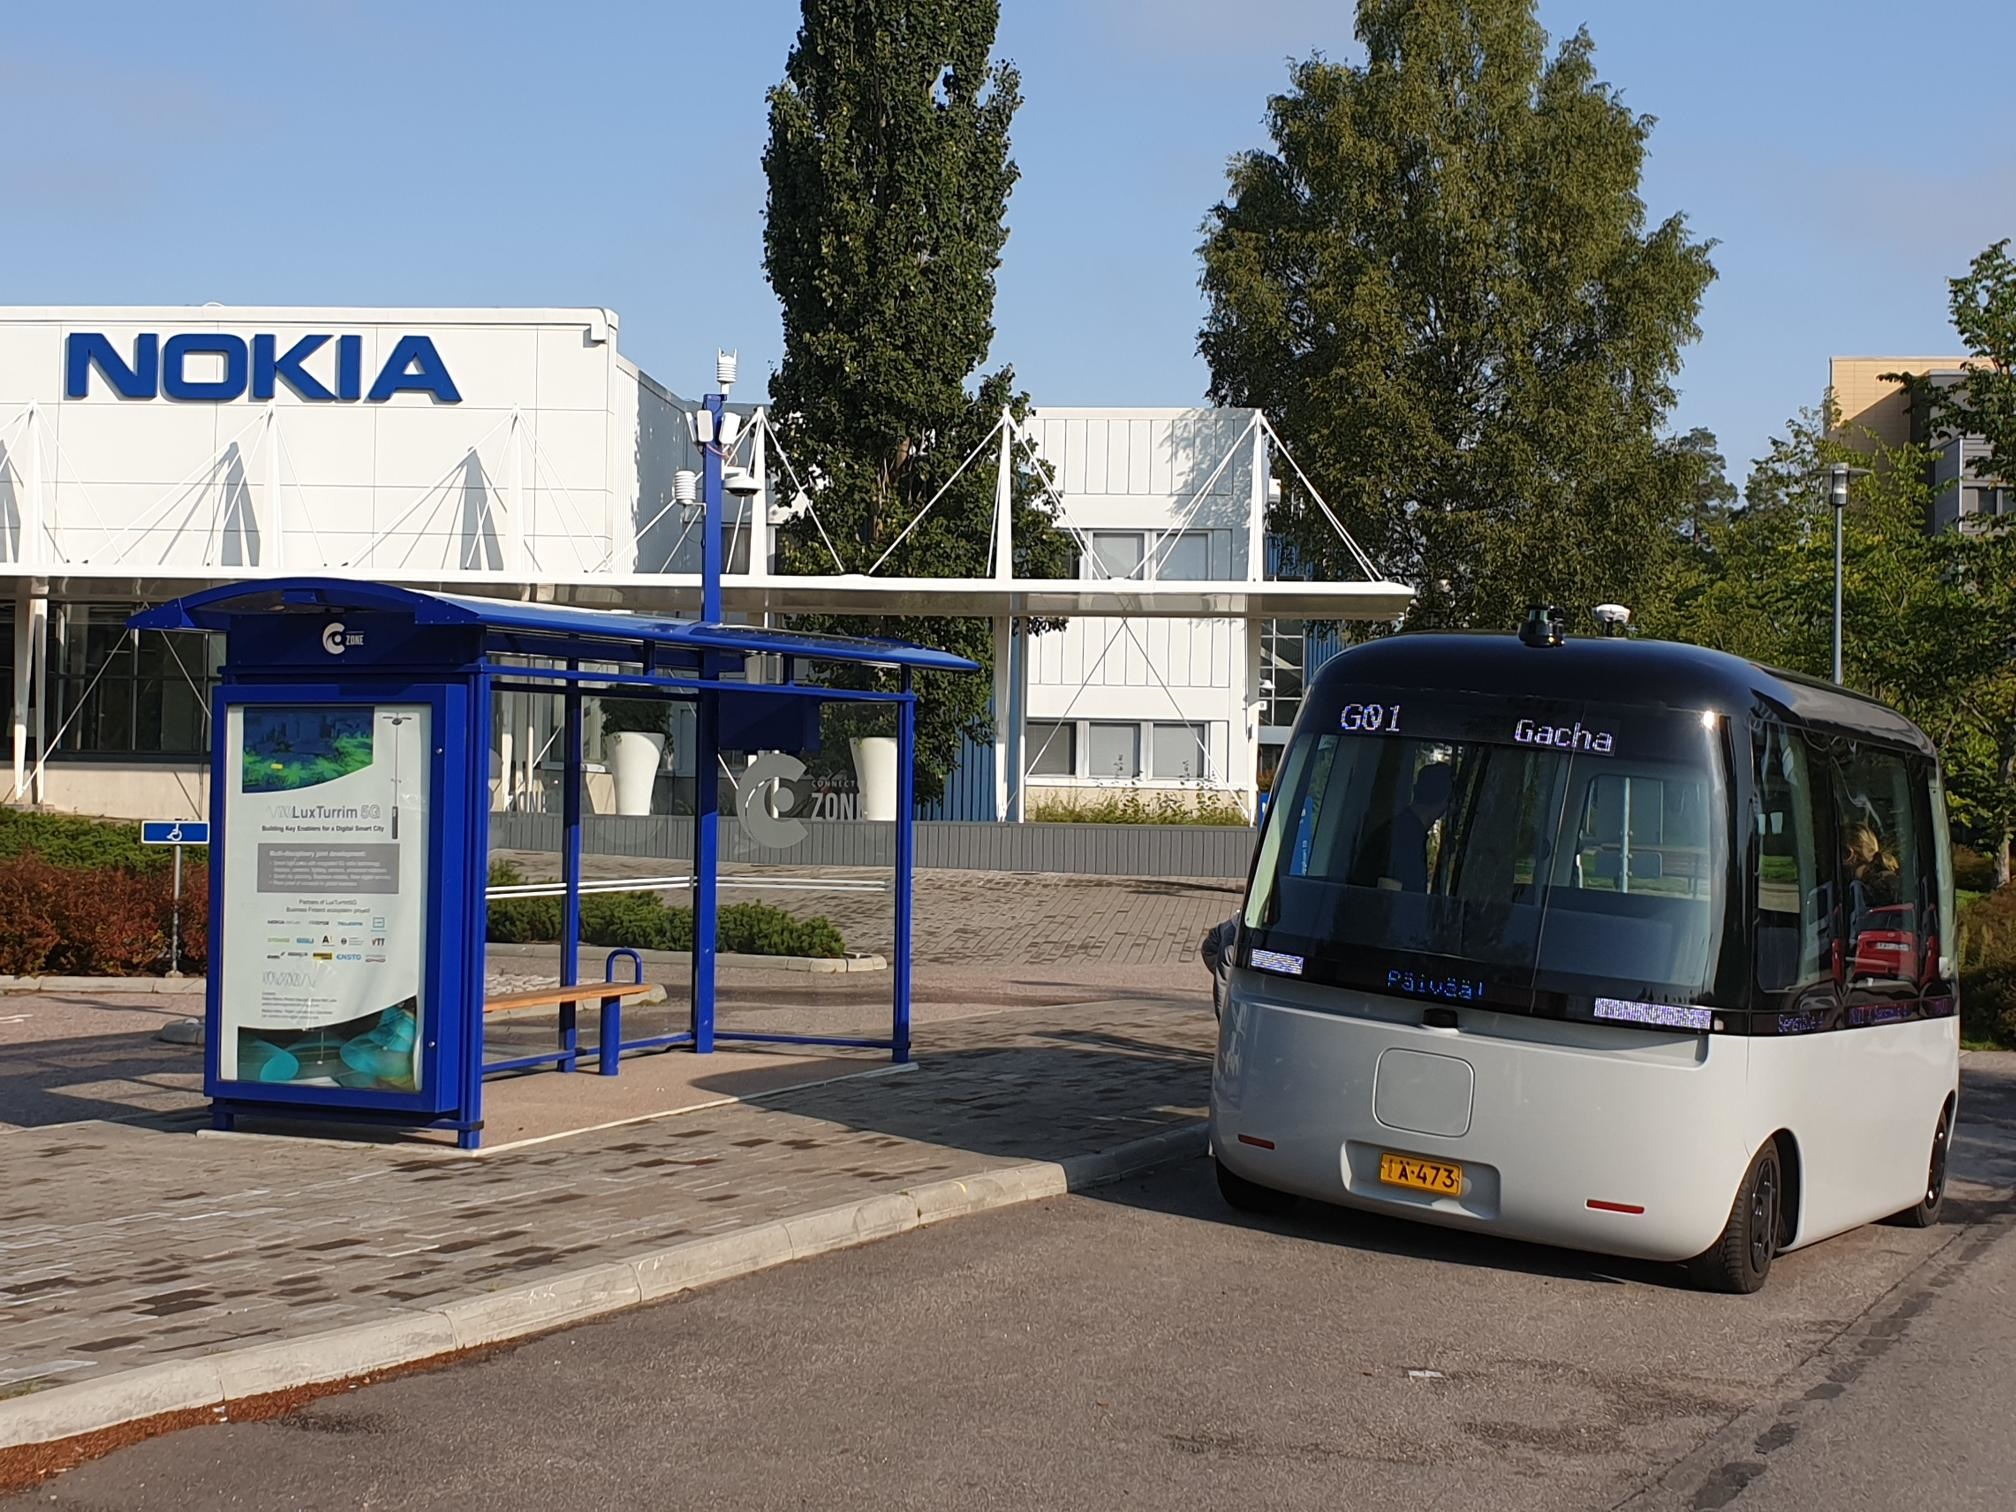 Gacha at Nokia Campus 10.9.2019. The smart bus stop by Teleste is part of the 1.5 km long LuxTurrim5G test route.